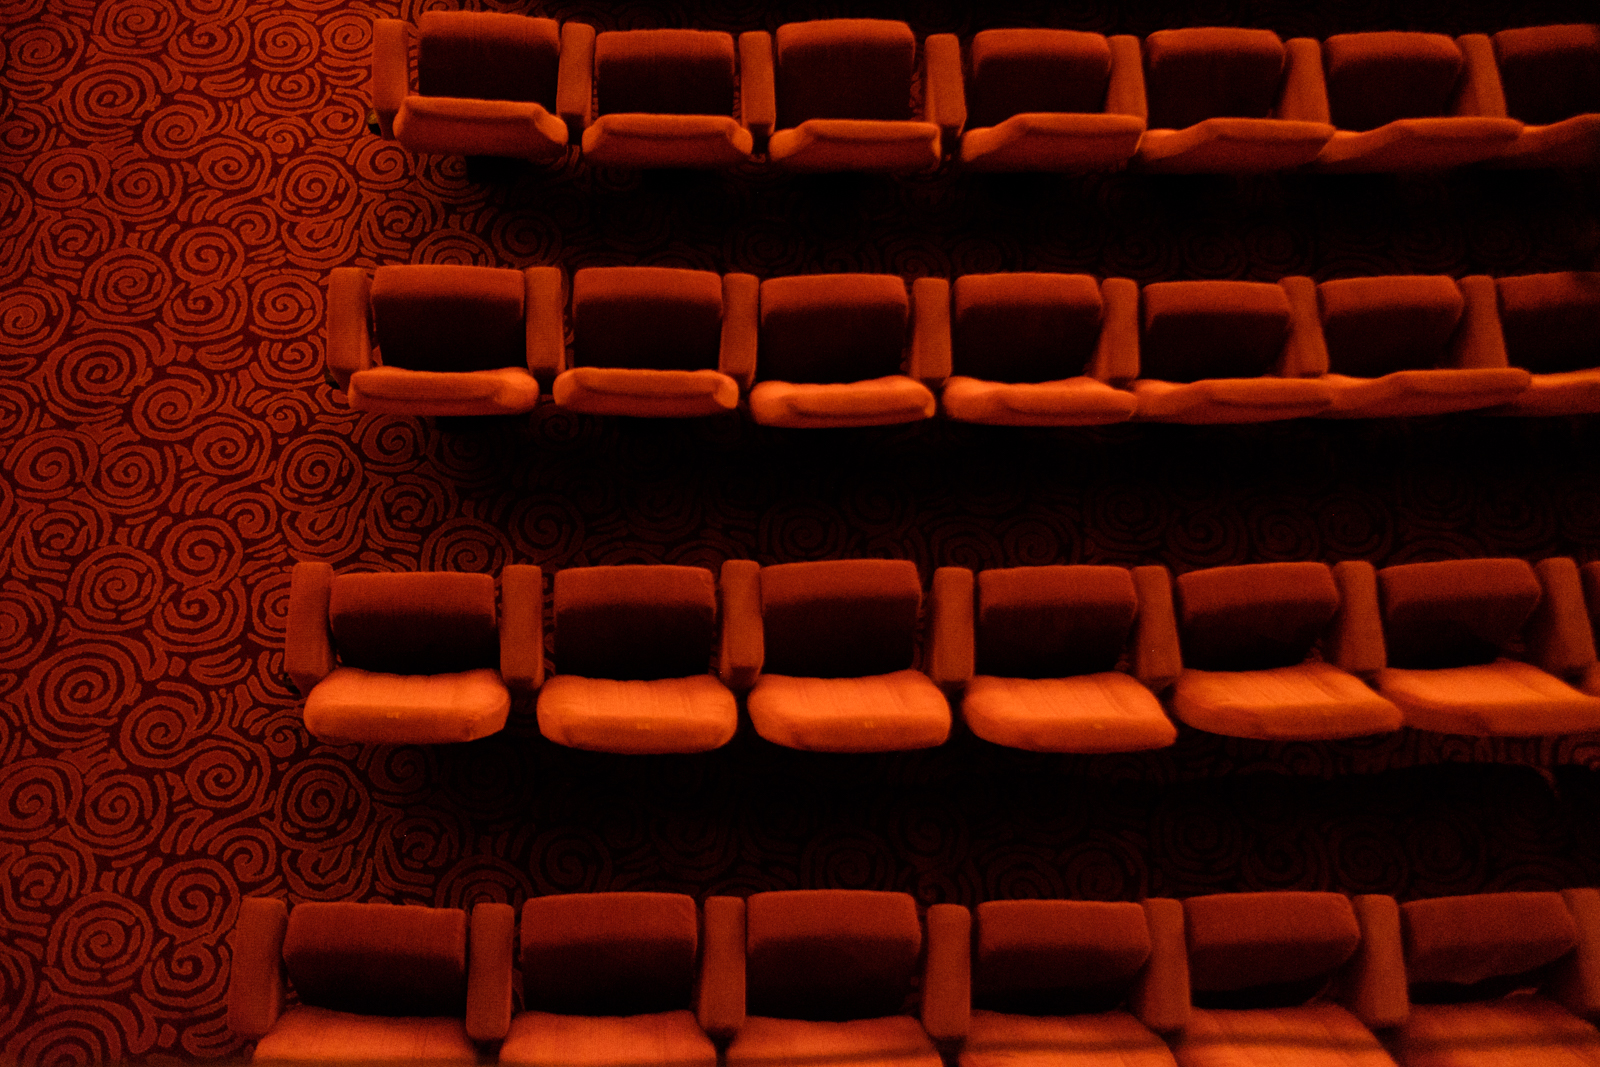 Seating at The Theater of Casino du Liban. For decades it hosted national and international artists, but is currently closed (MEE/Rita Kabalan)